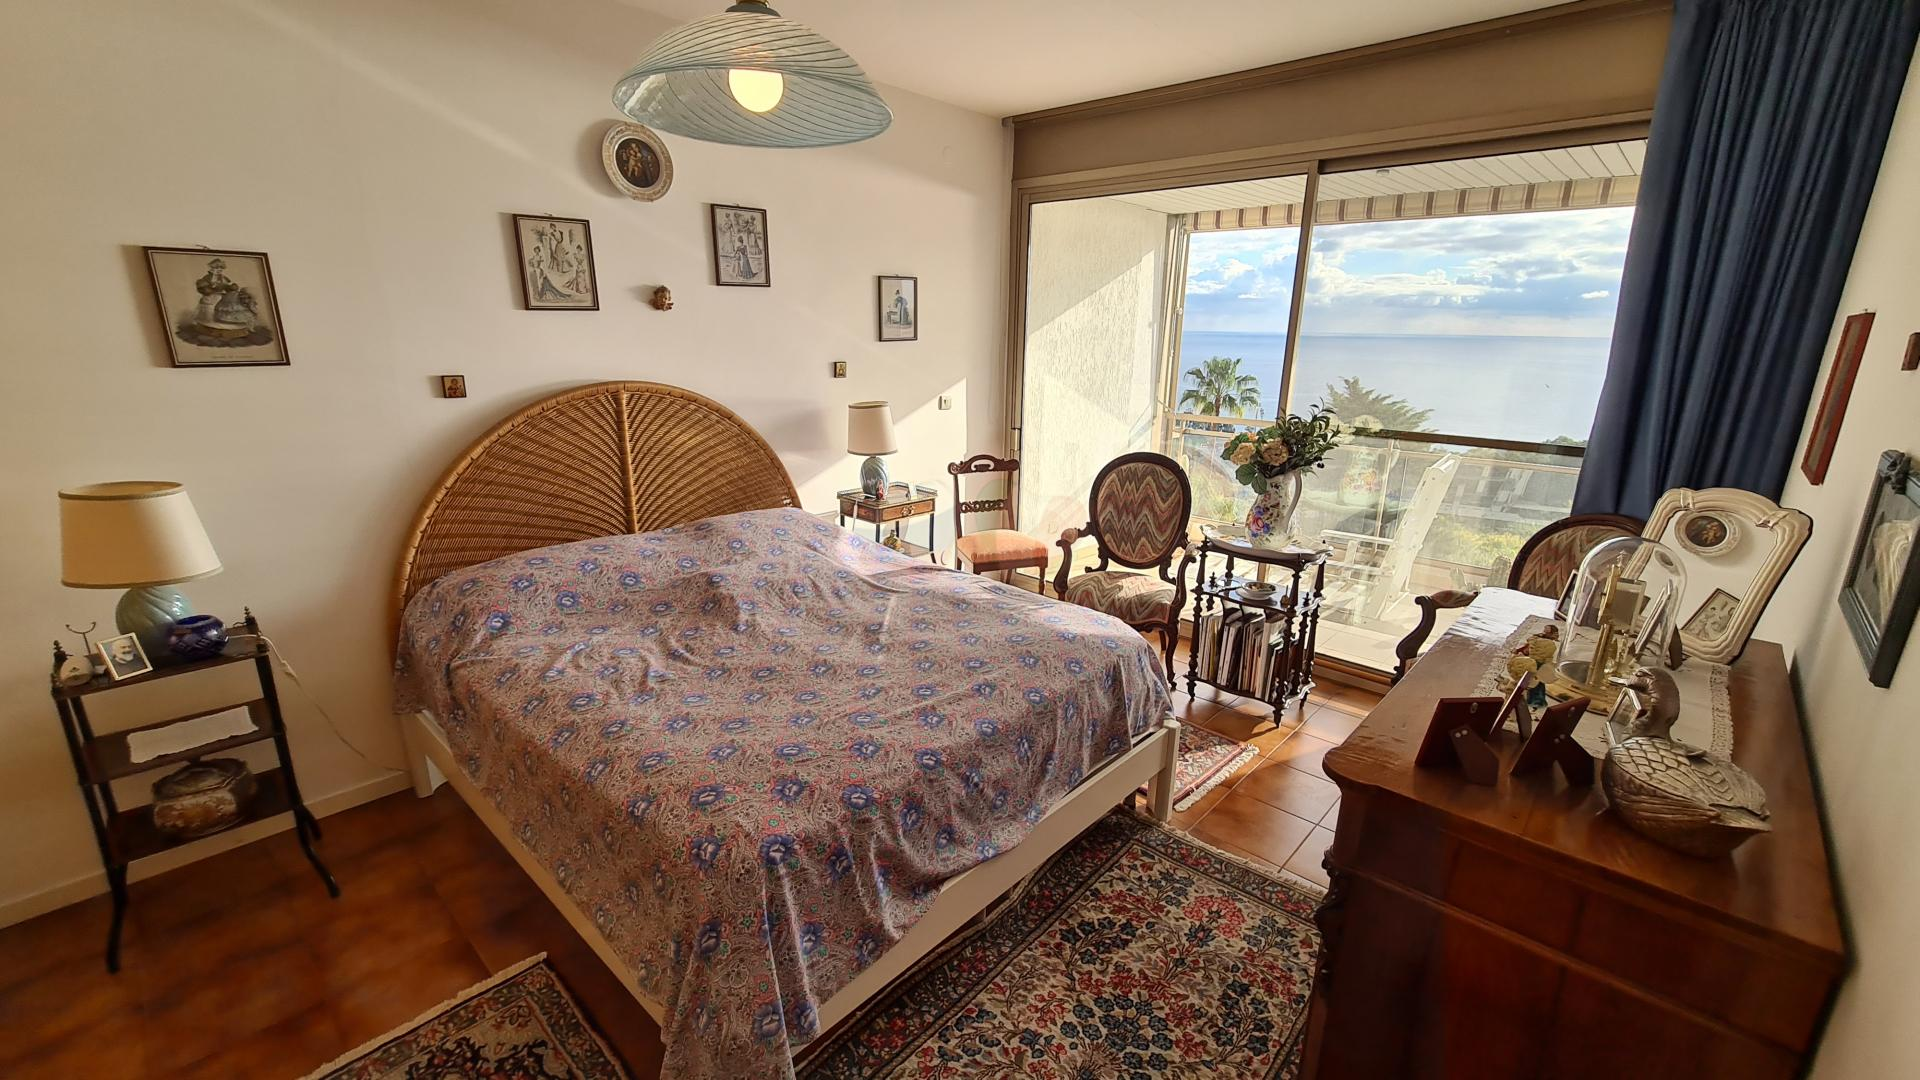 Sanremo apartment with sea view